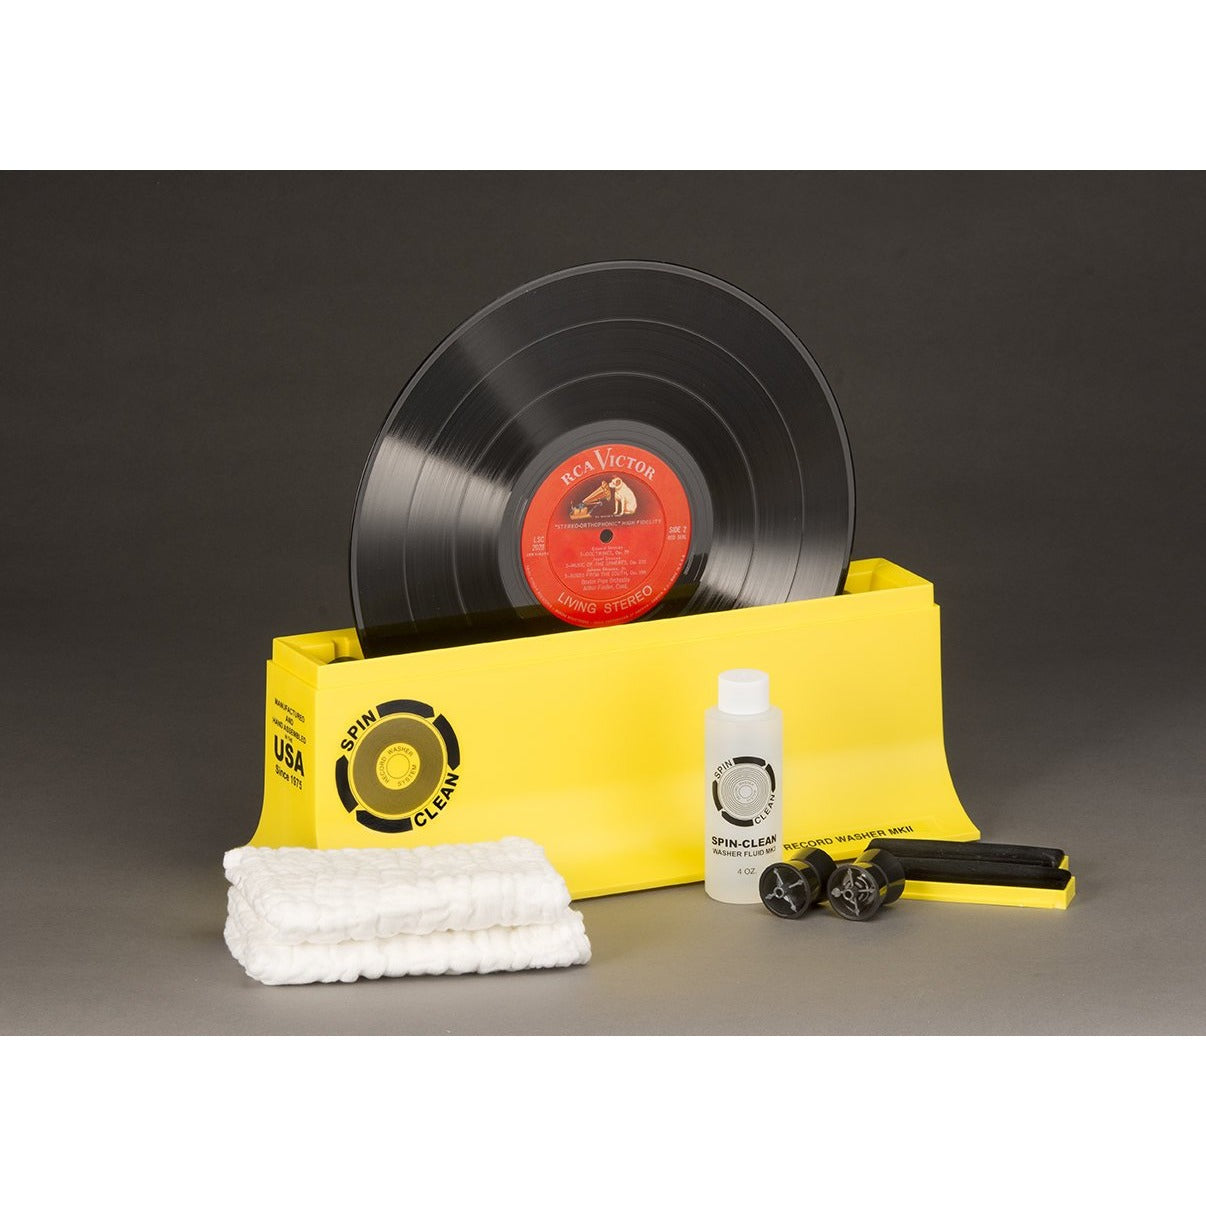 SPIN-CLEAN RECORD WASHER SYSTEM MKII - Vinyl Sound